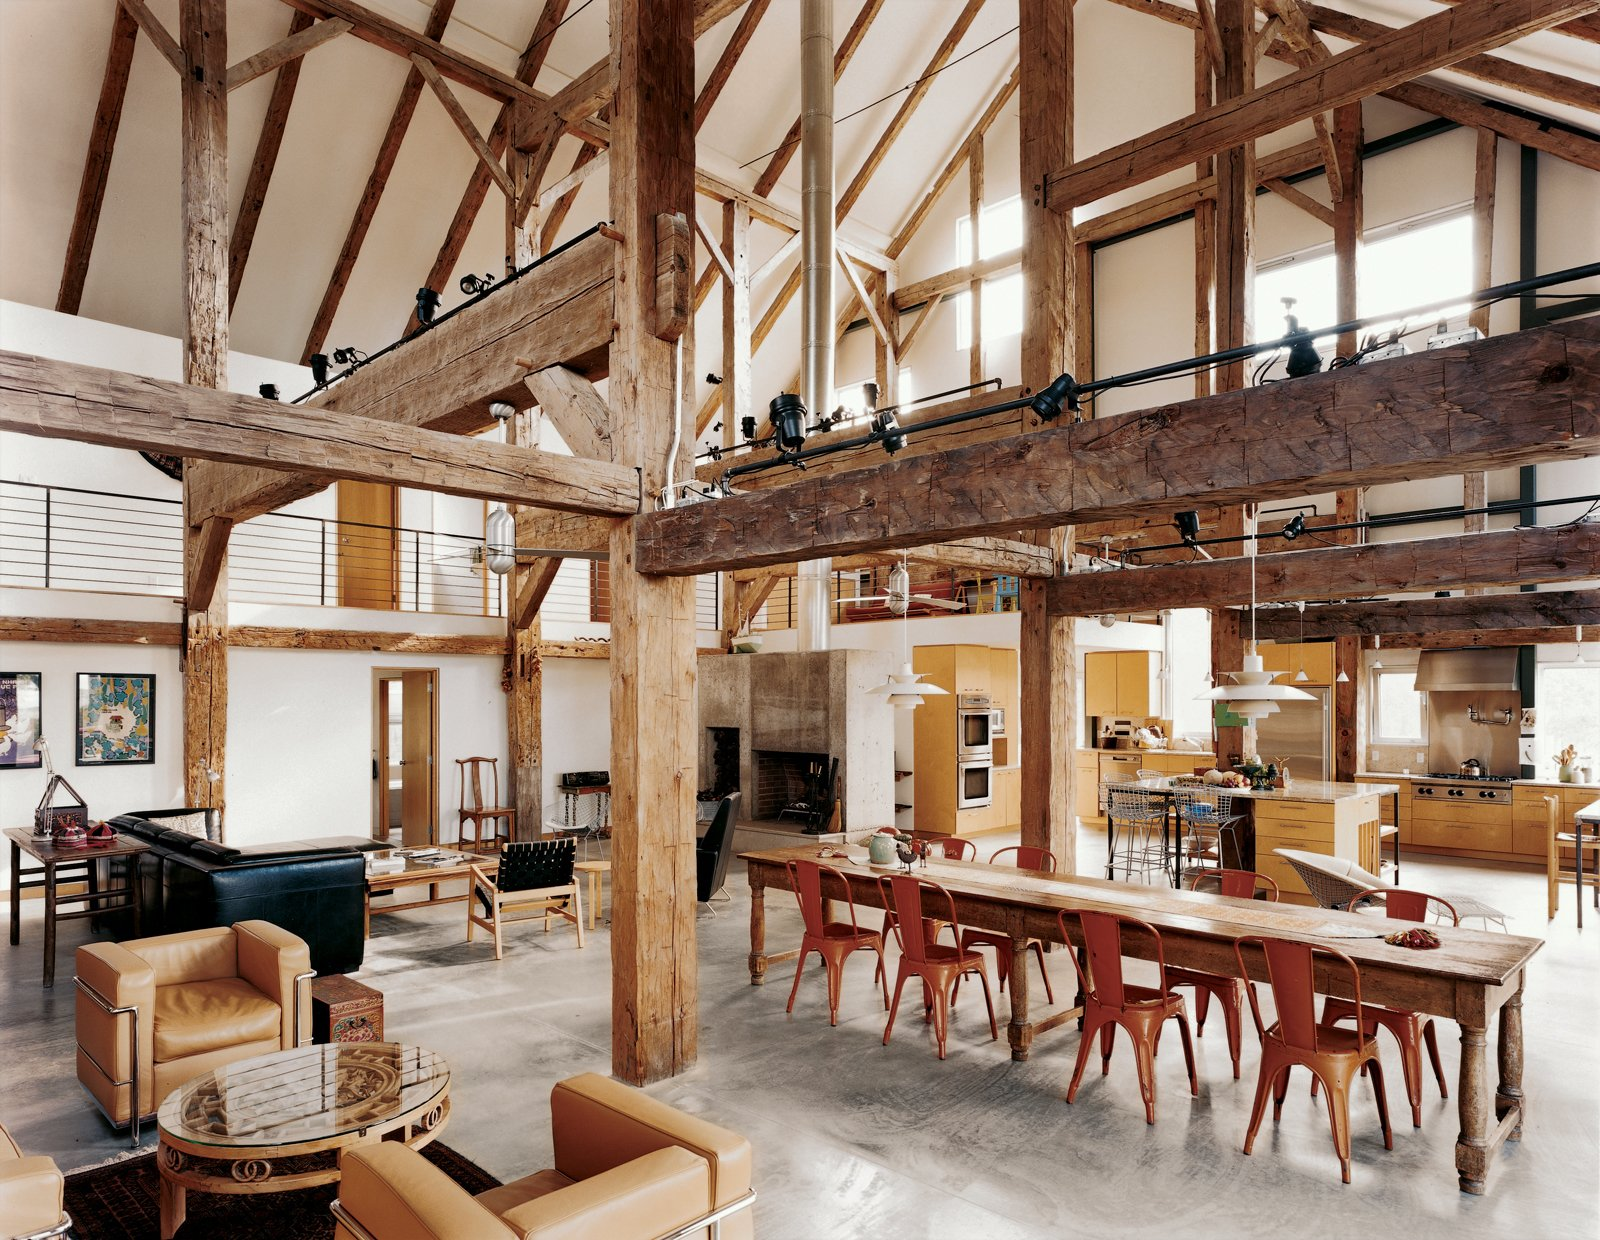 "Dining Room, Concrete Floor, Track Lighting, Chair, and Table ""We didn't want to diminish the openness and height and feeling of a great expanse of space,"" said the owner of this resurrected 19th-century barn house in Pine Plains, New York. Fortunately, the barn frame's horizontal beams perform a domestic function by creating the illusion of a lower ceiling. An abundance of furnishings in rich materials fills out the space. Photo by Raimund Koch.  Photo 4 of 7 in Raising the Barn"